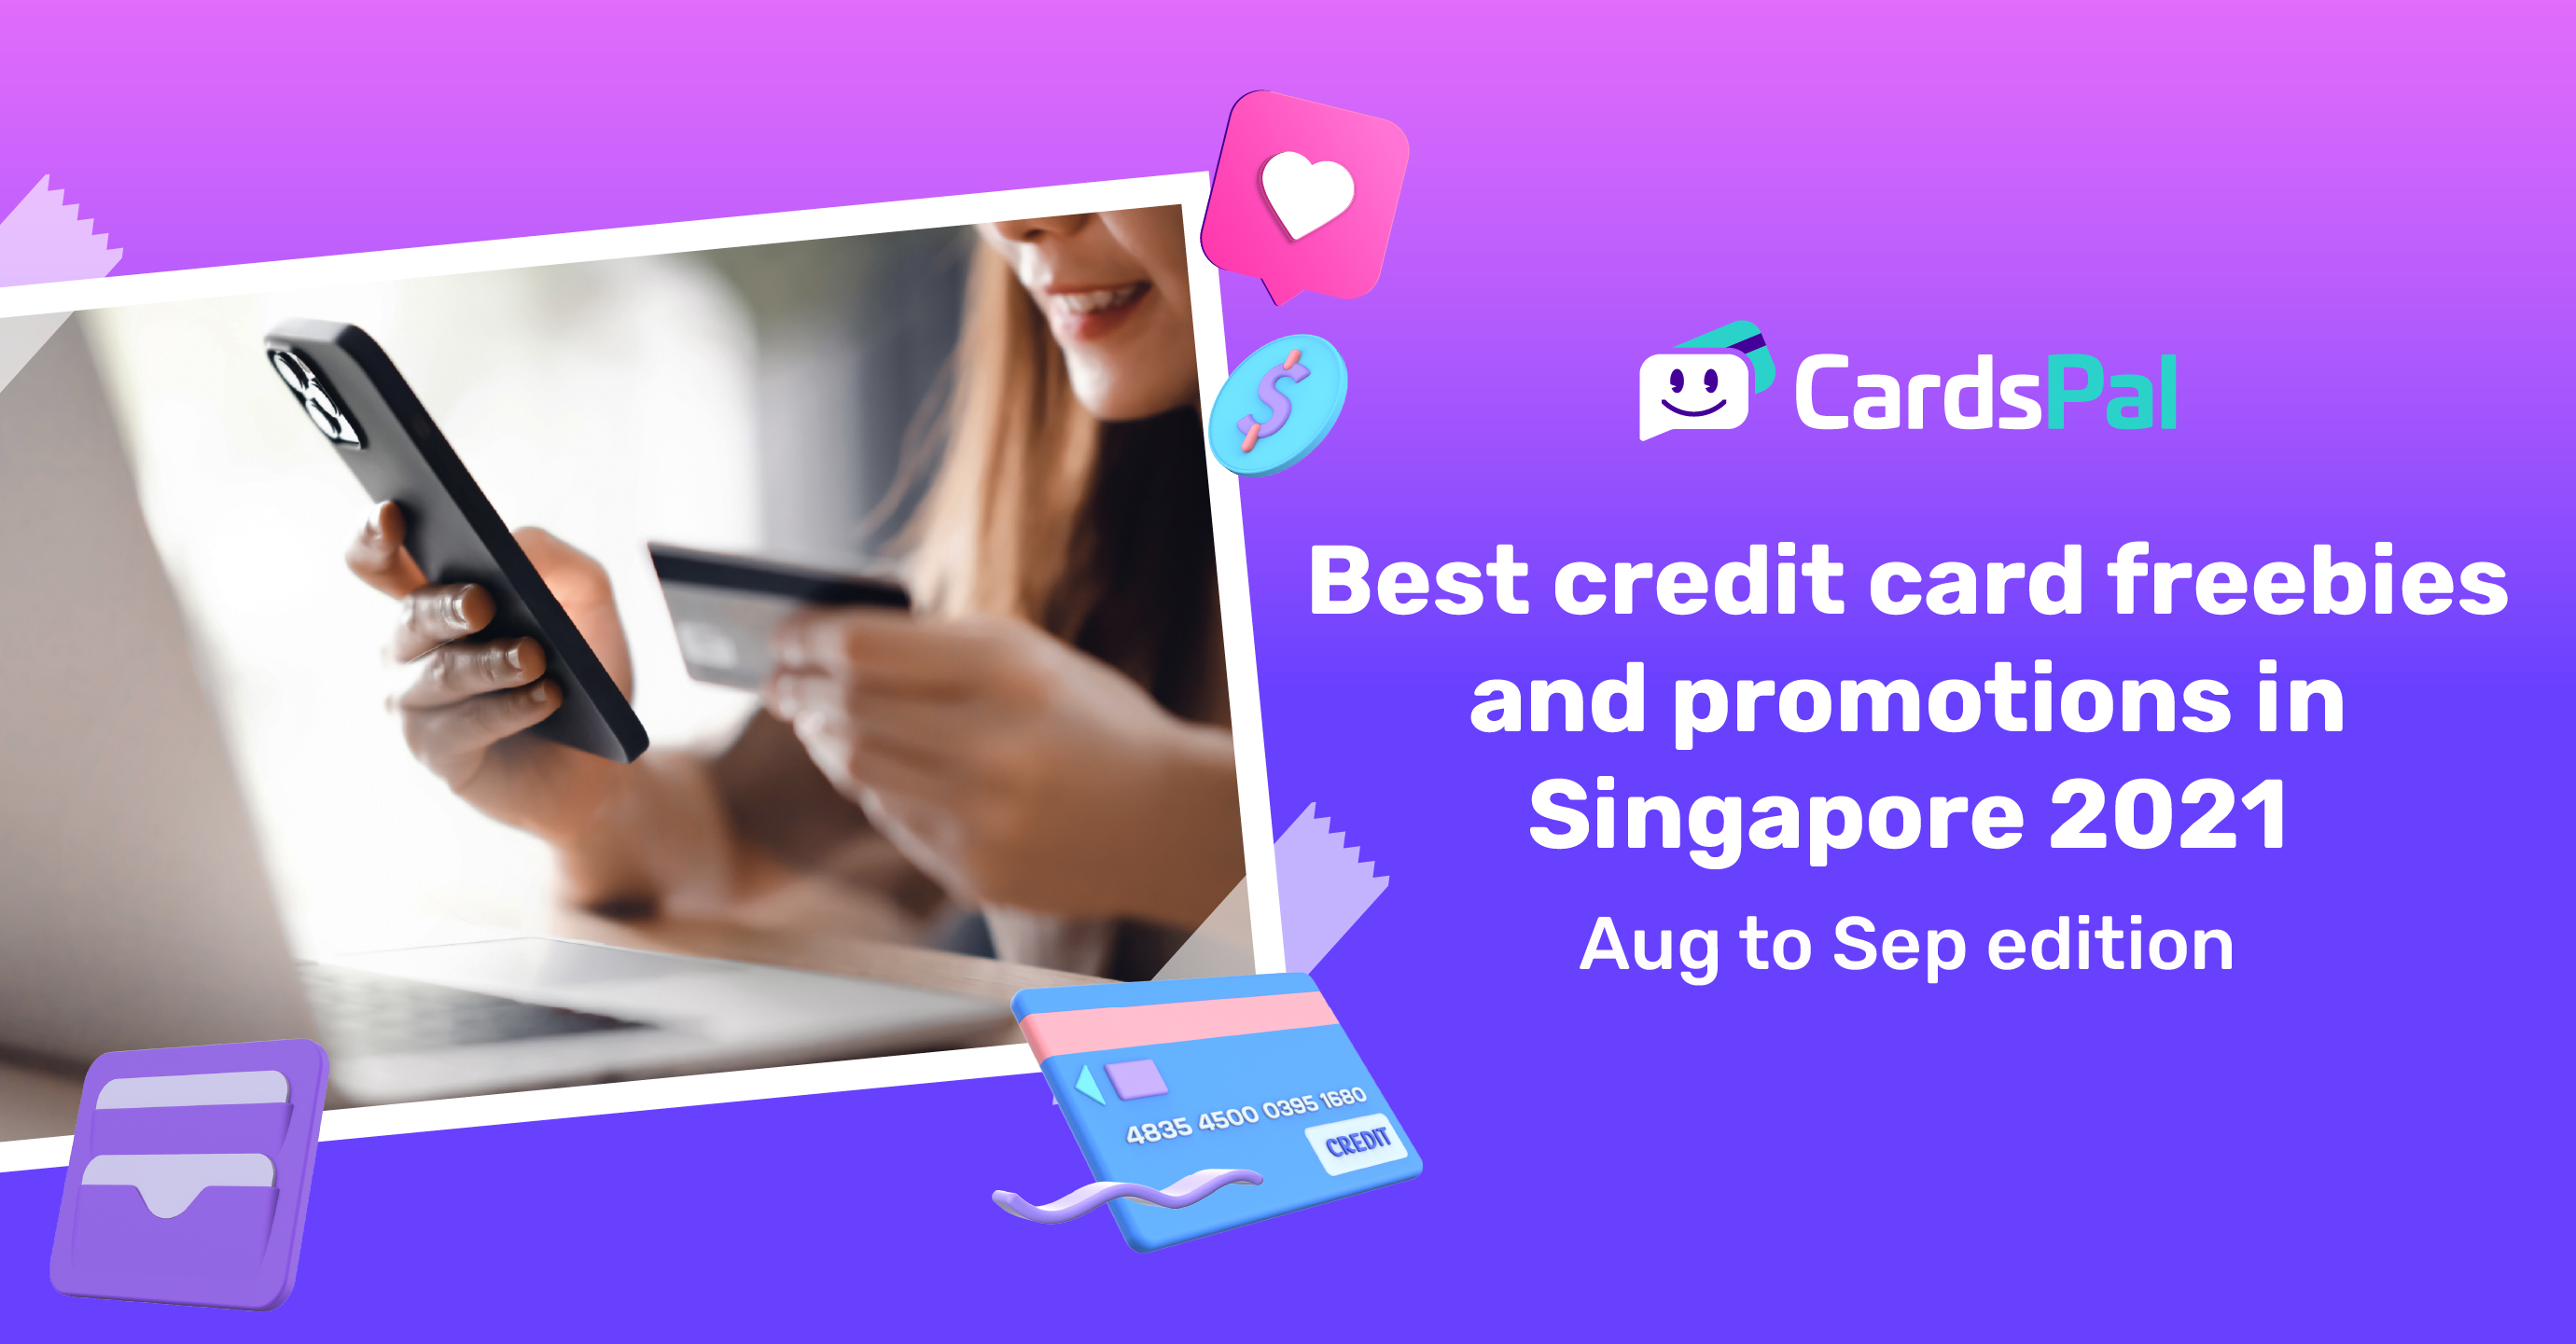 Best credit card freebies and promotions in Singapore 2021 (Aug to Sep edition)